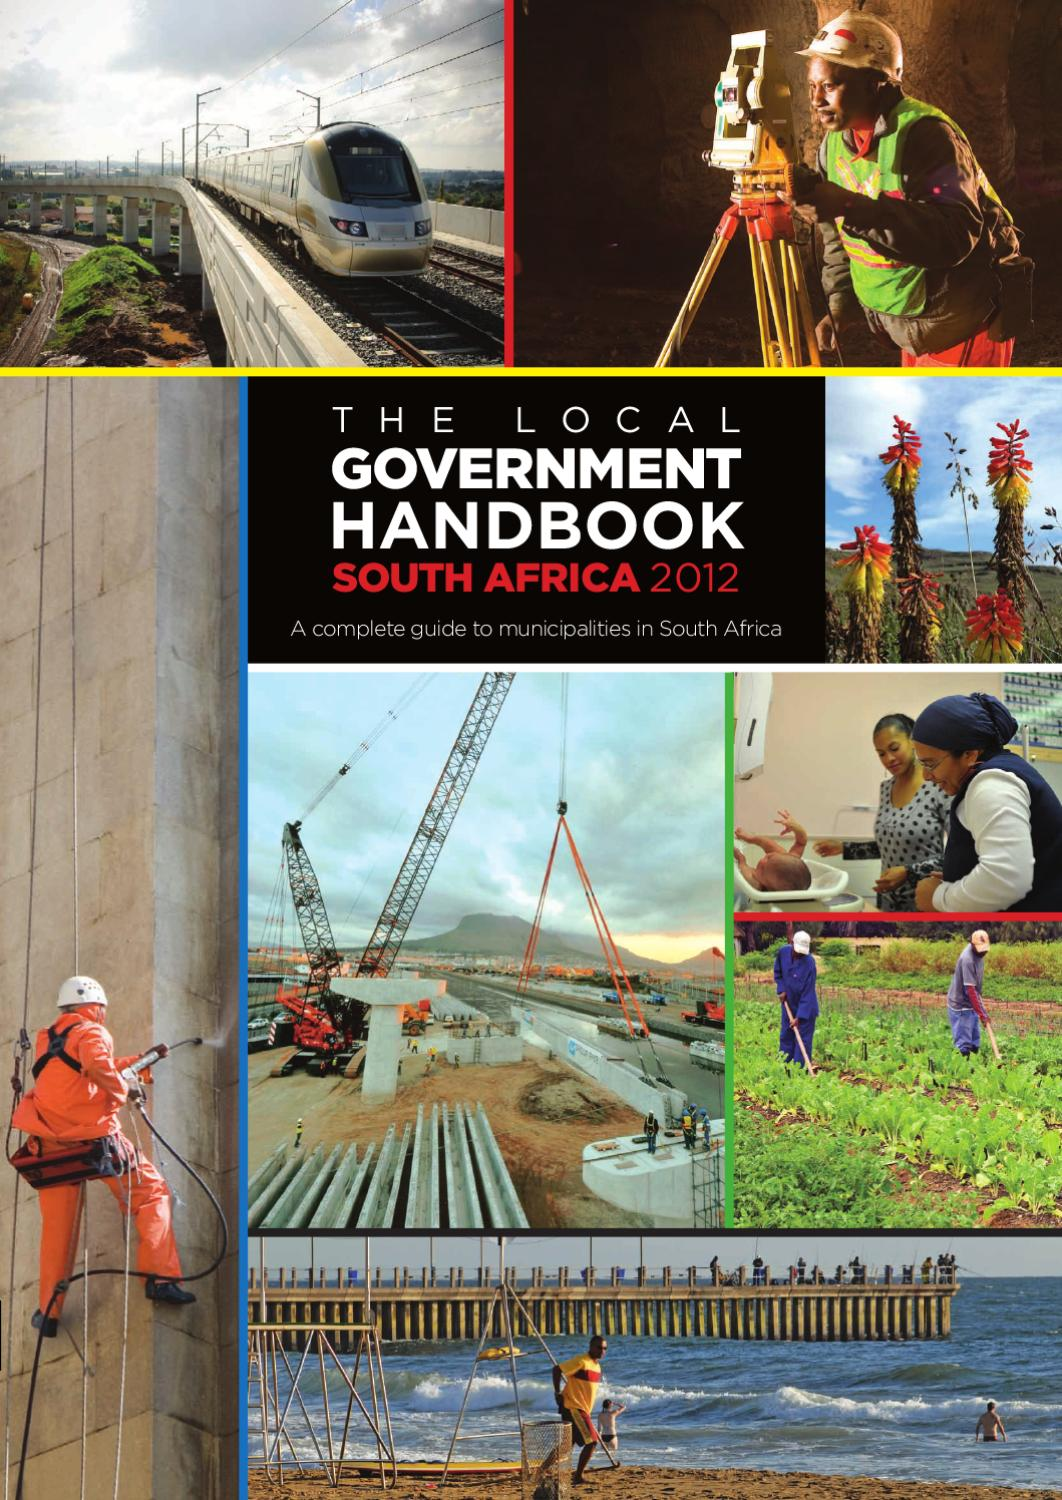 Local Government Handbook South Africa 2012 By Yes Media Issuu 99 Club Car Golf Cart Wiring Diagram